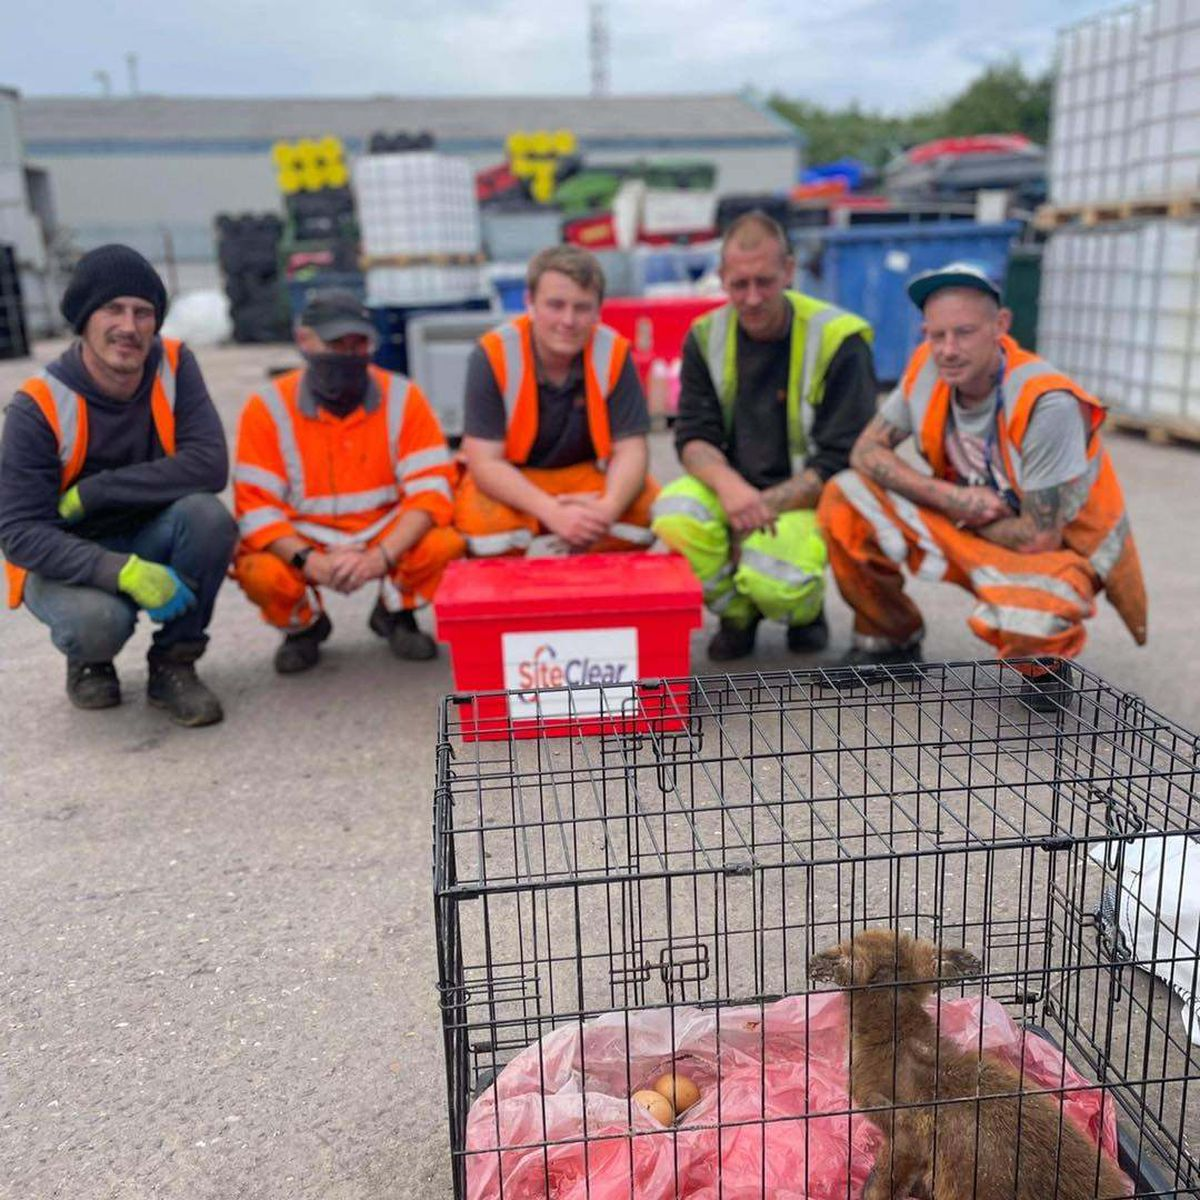 Some of the workers at Site Clear Solutions who looked after the cubs (Image by Site Clear Solutions)